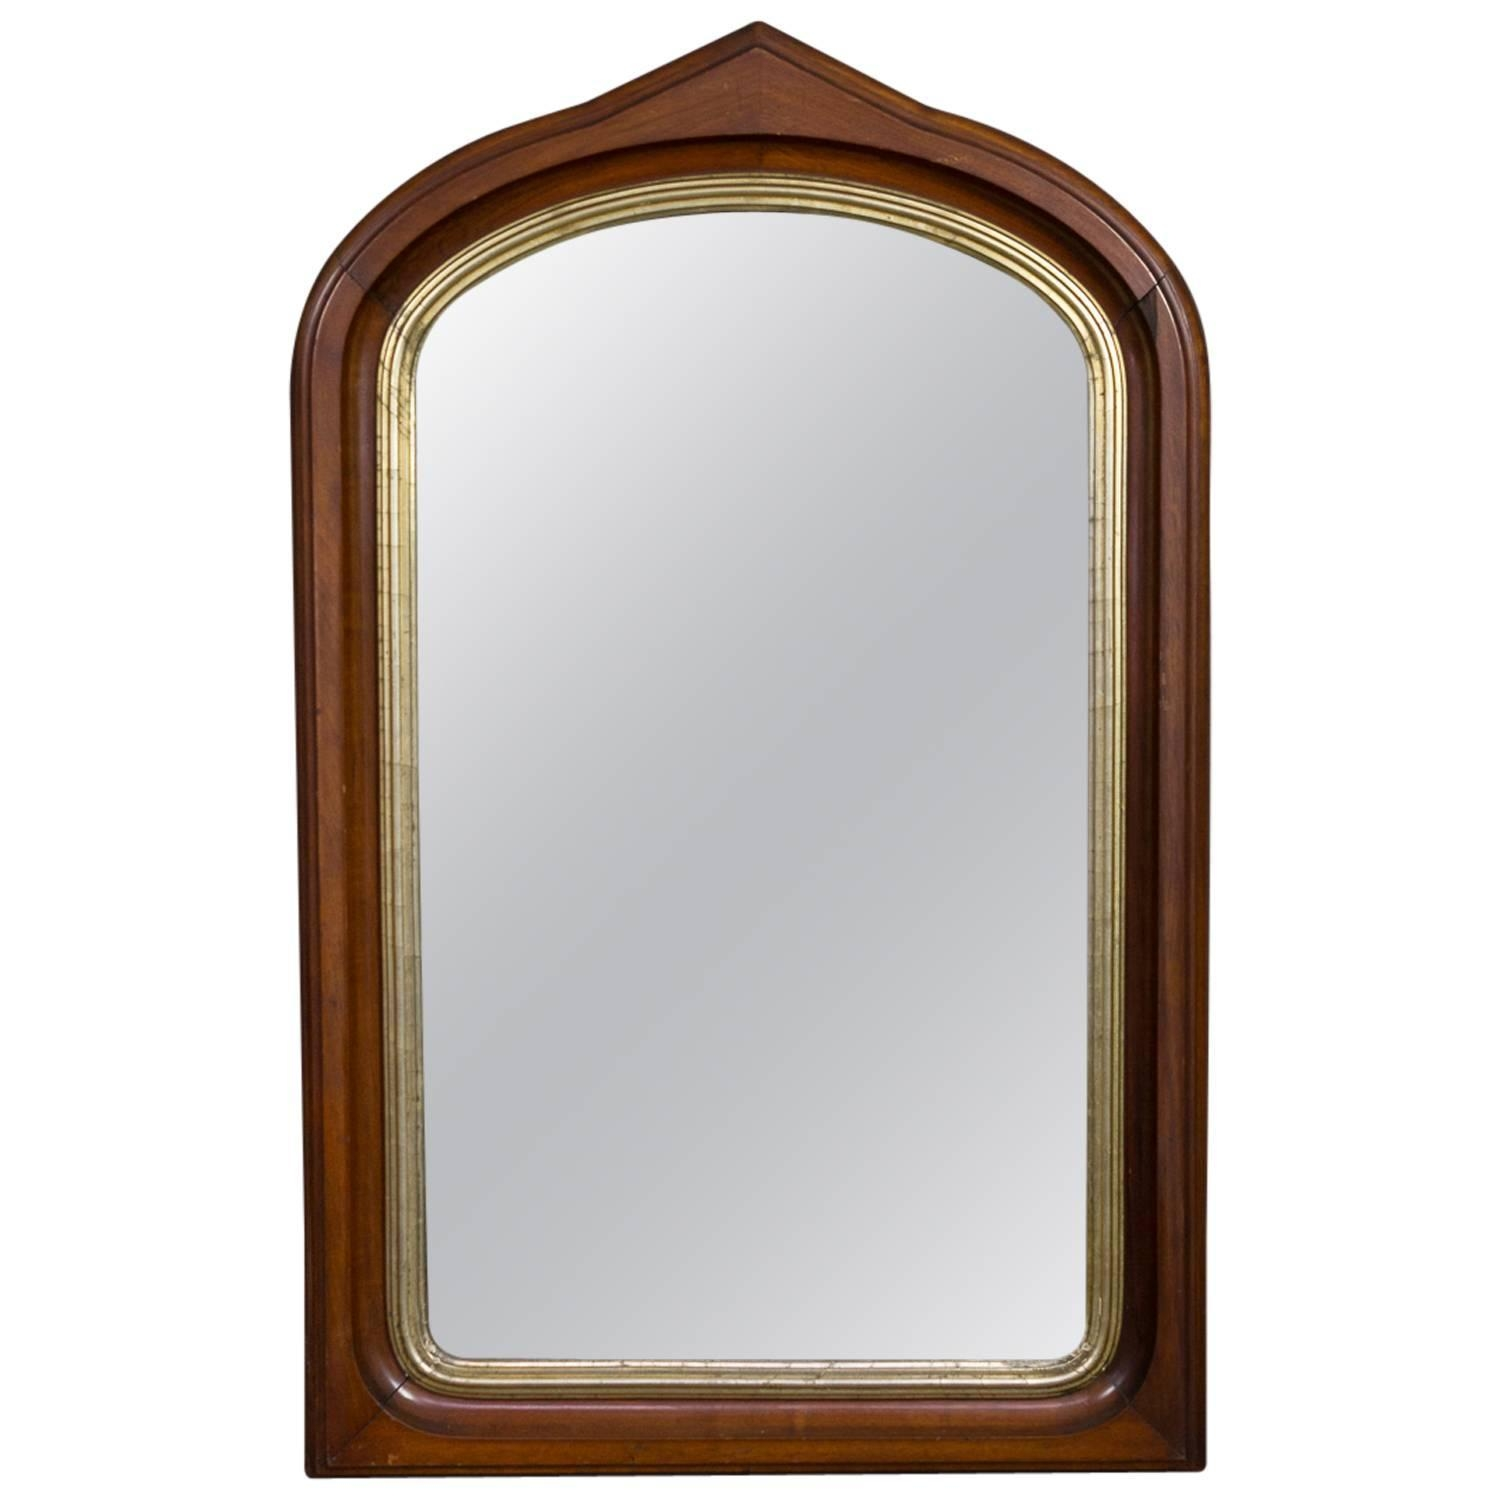 Gothic Revival Burl Wood Arched Wall Mirror At 1stdibs In Gothic Wall Mirror (Image 9 of 15)